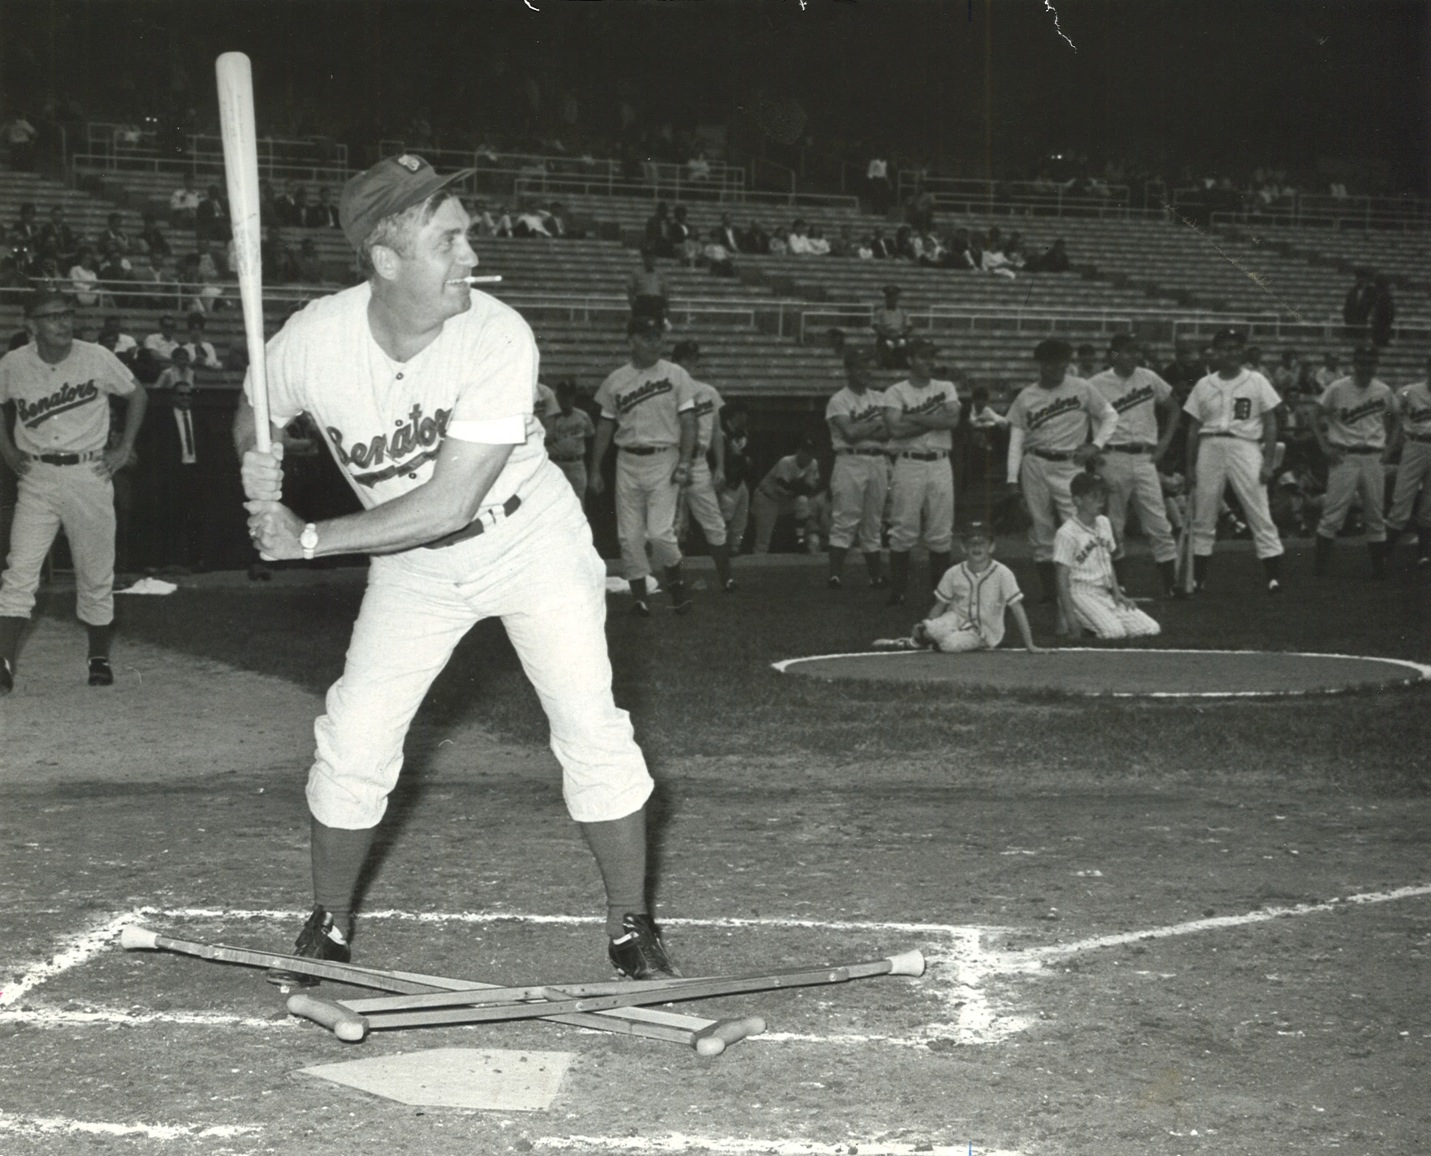 Silvio O. Conte, R-Mass., with a cigar clamped in his teeth and his recently discarded crutches below him, lines up to take a Democrat team pitch at the 1966 Congressional Baseball game.